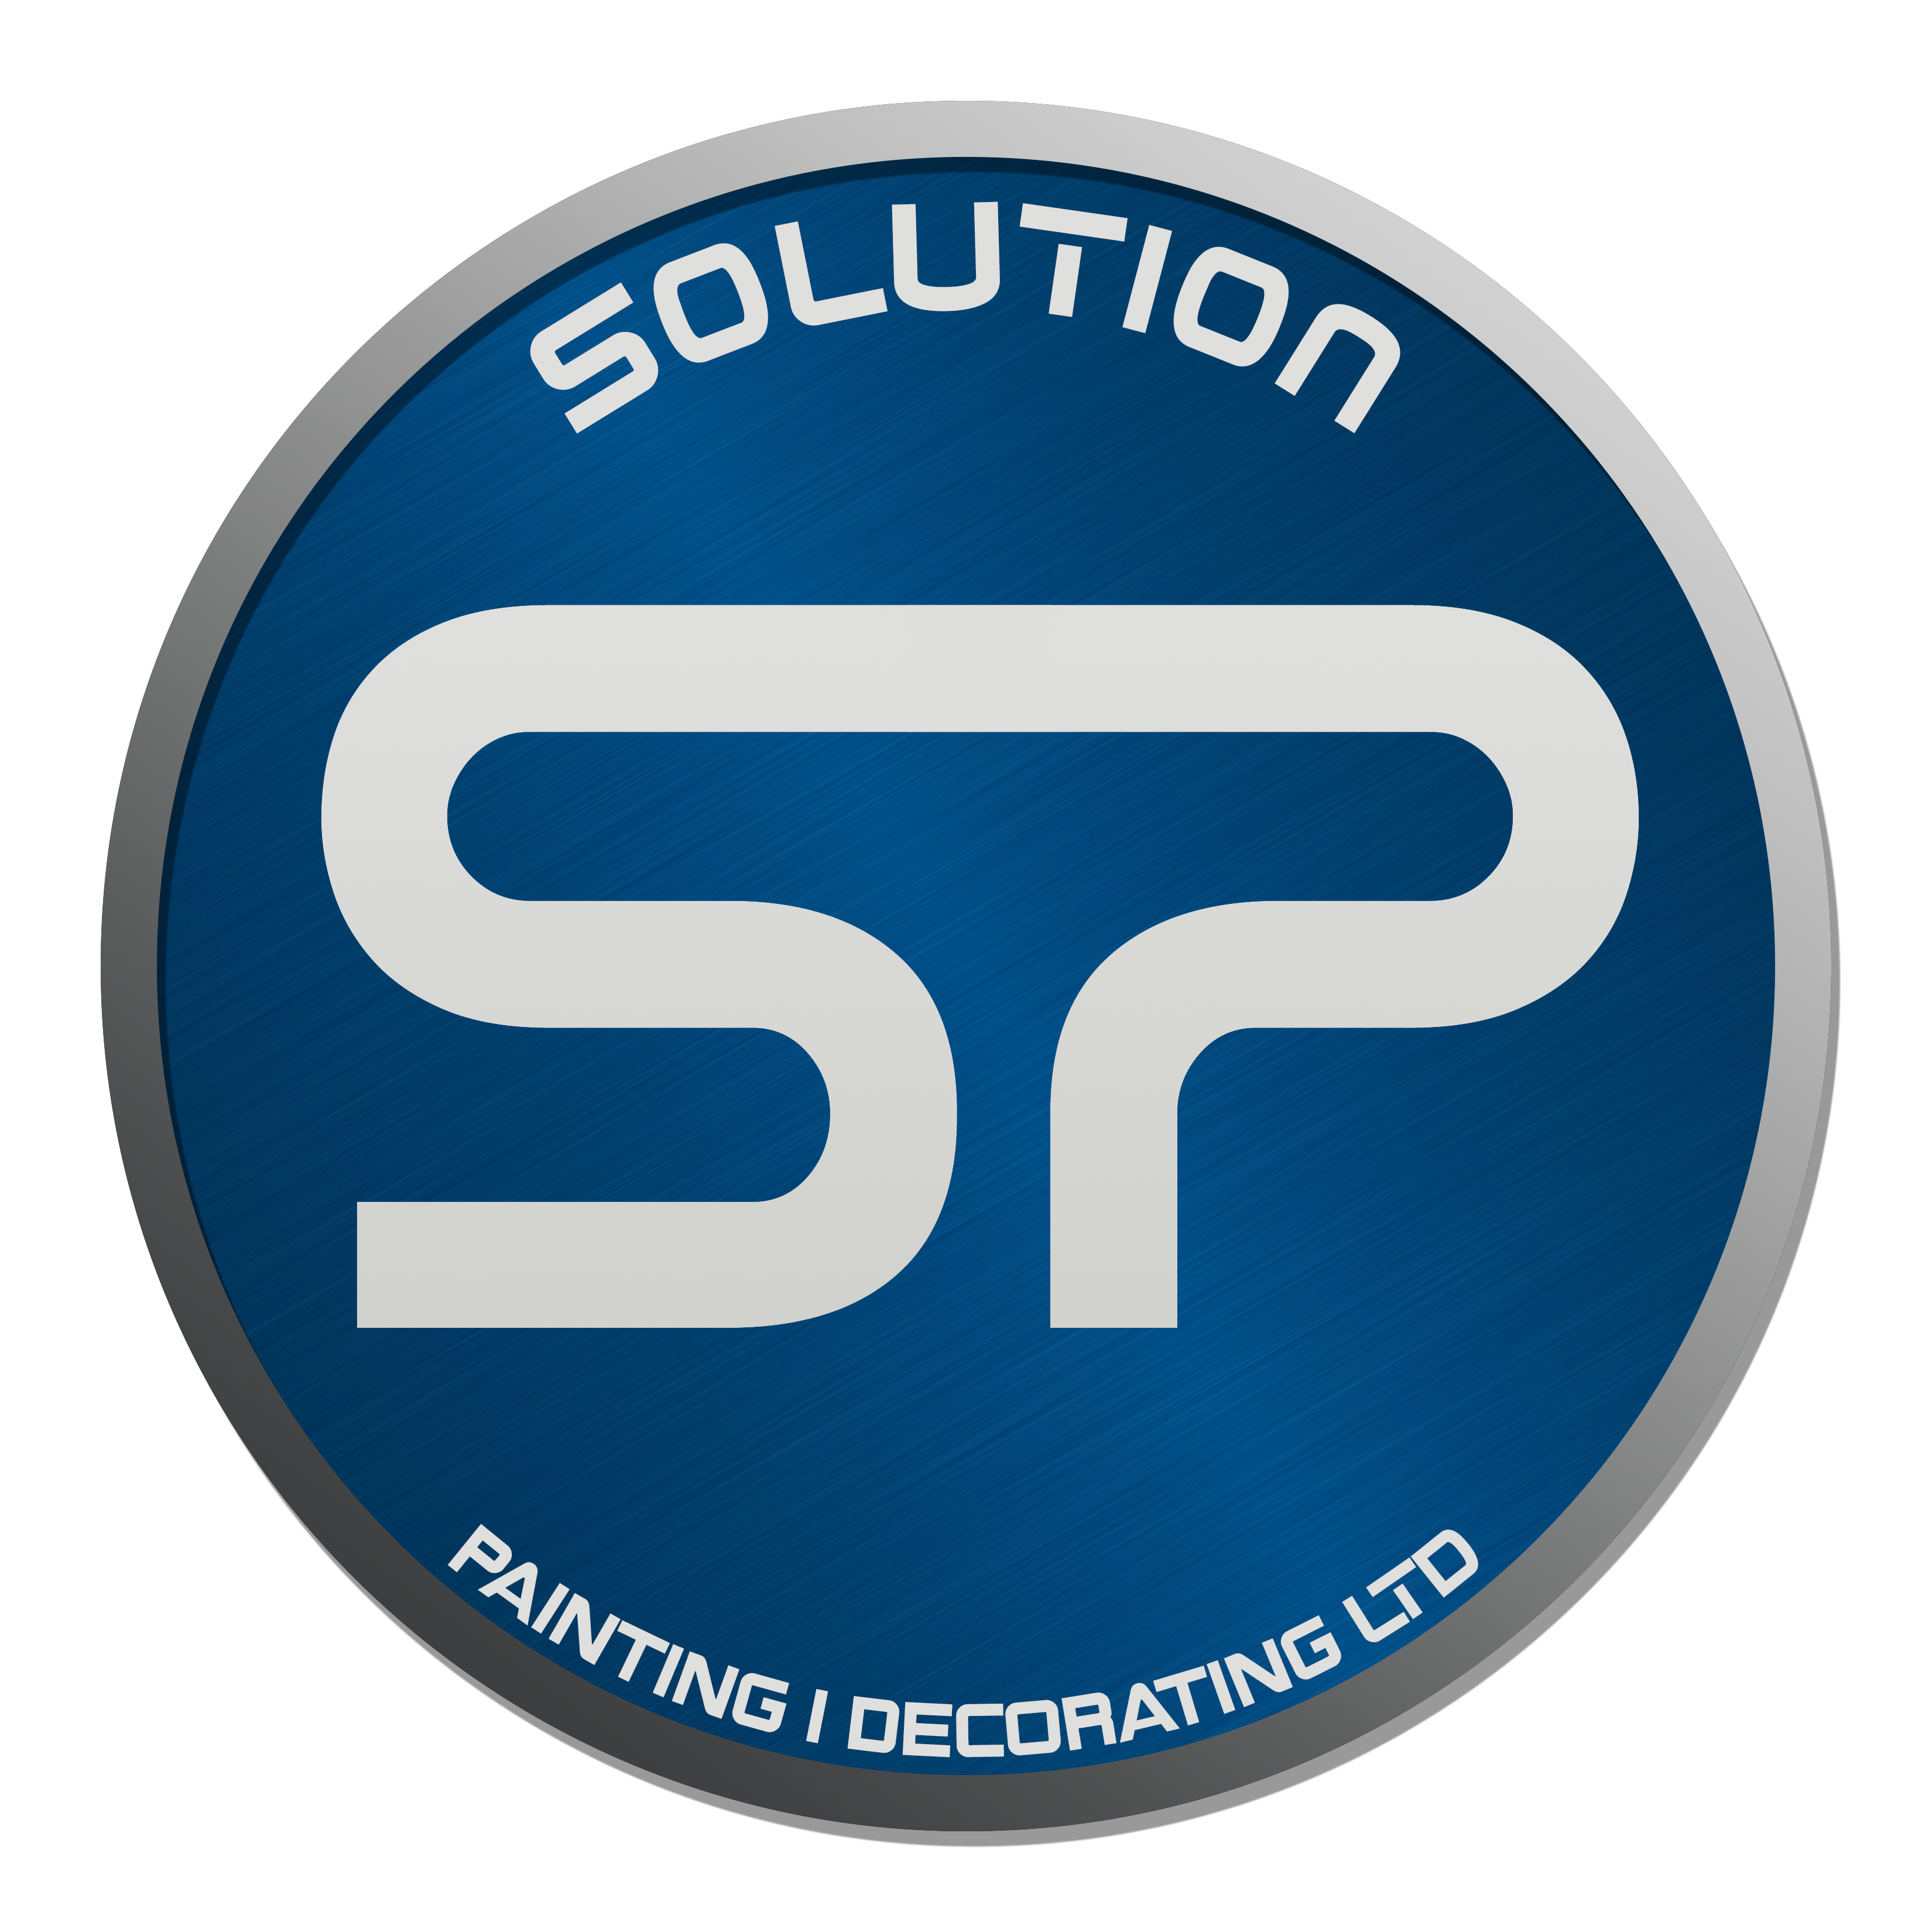 Solution Painting